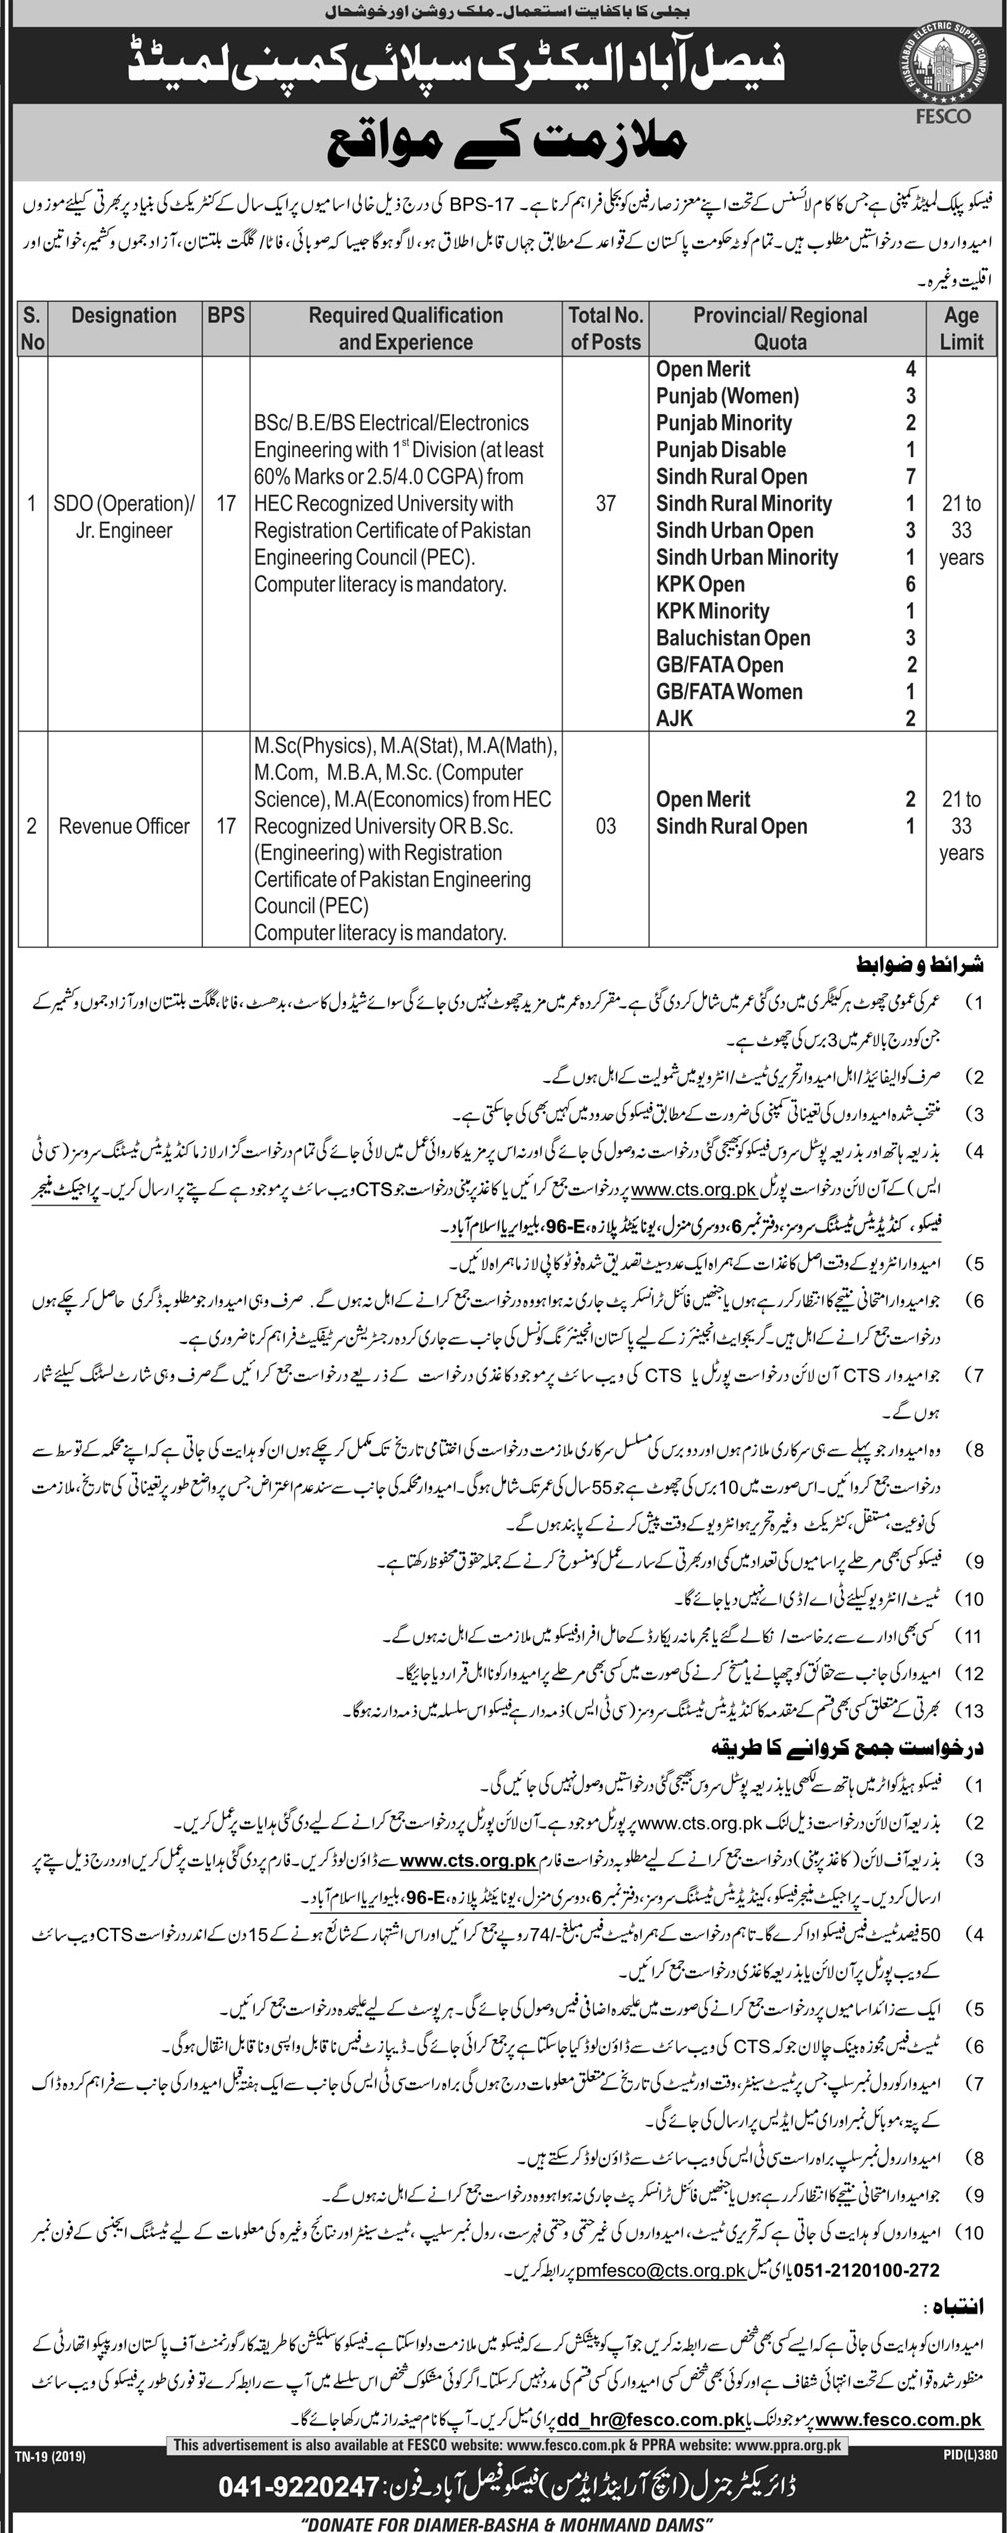 FESCO Jobs CTS Test Result Faisalabad Electric Supply Company